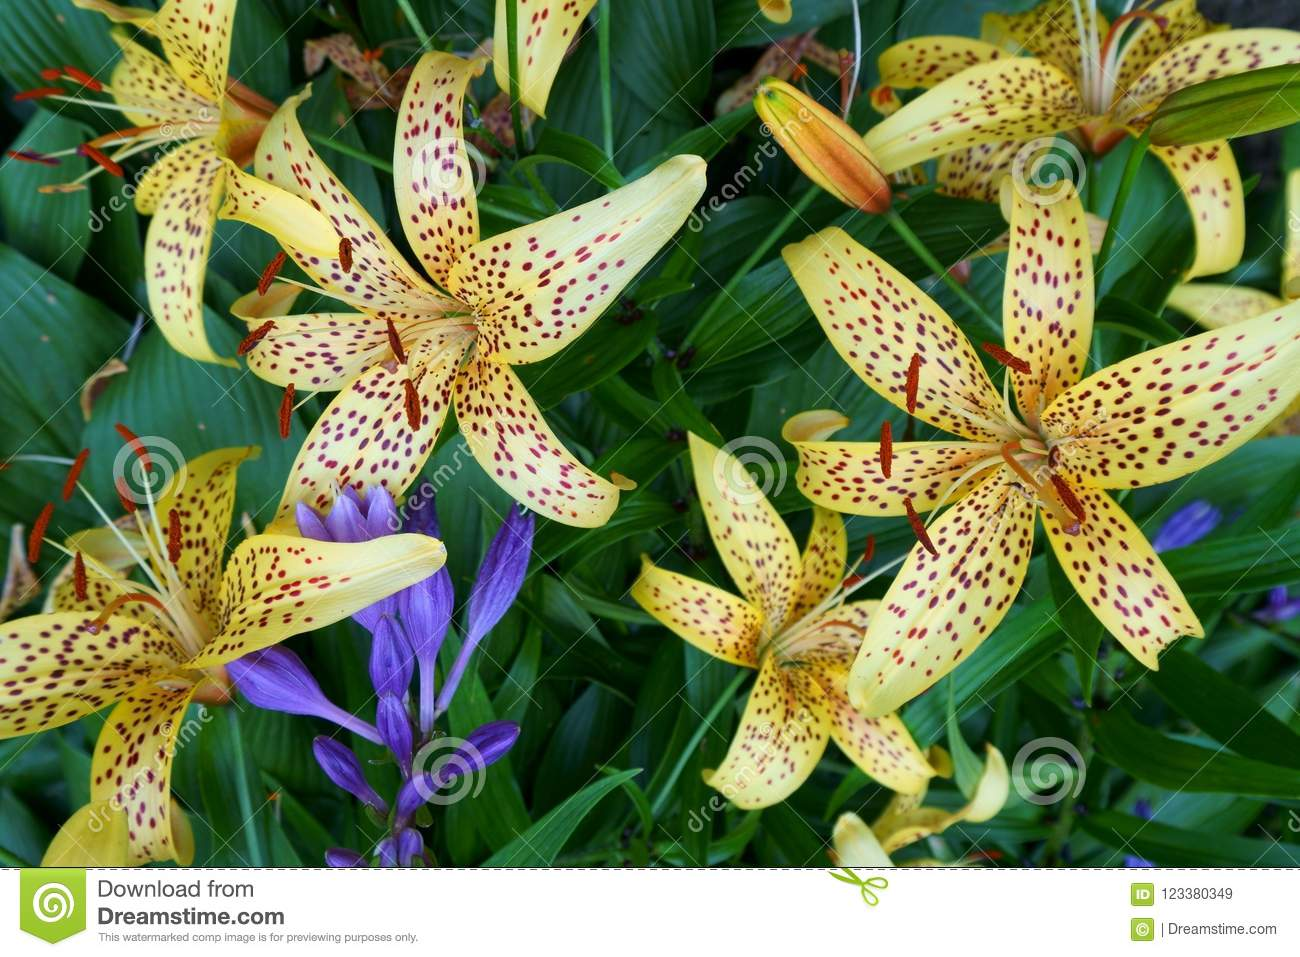 Close-up of yellow tiger lily and one blue bell